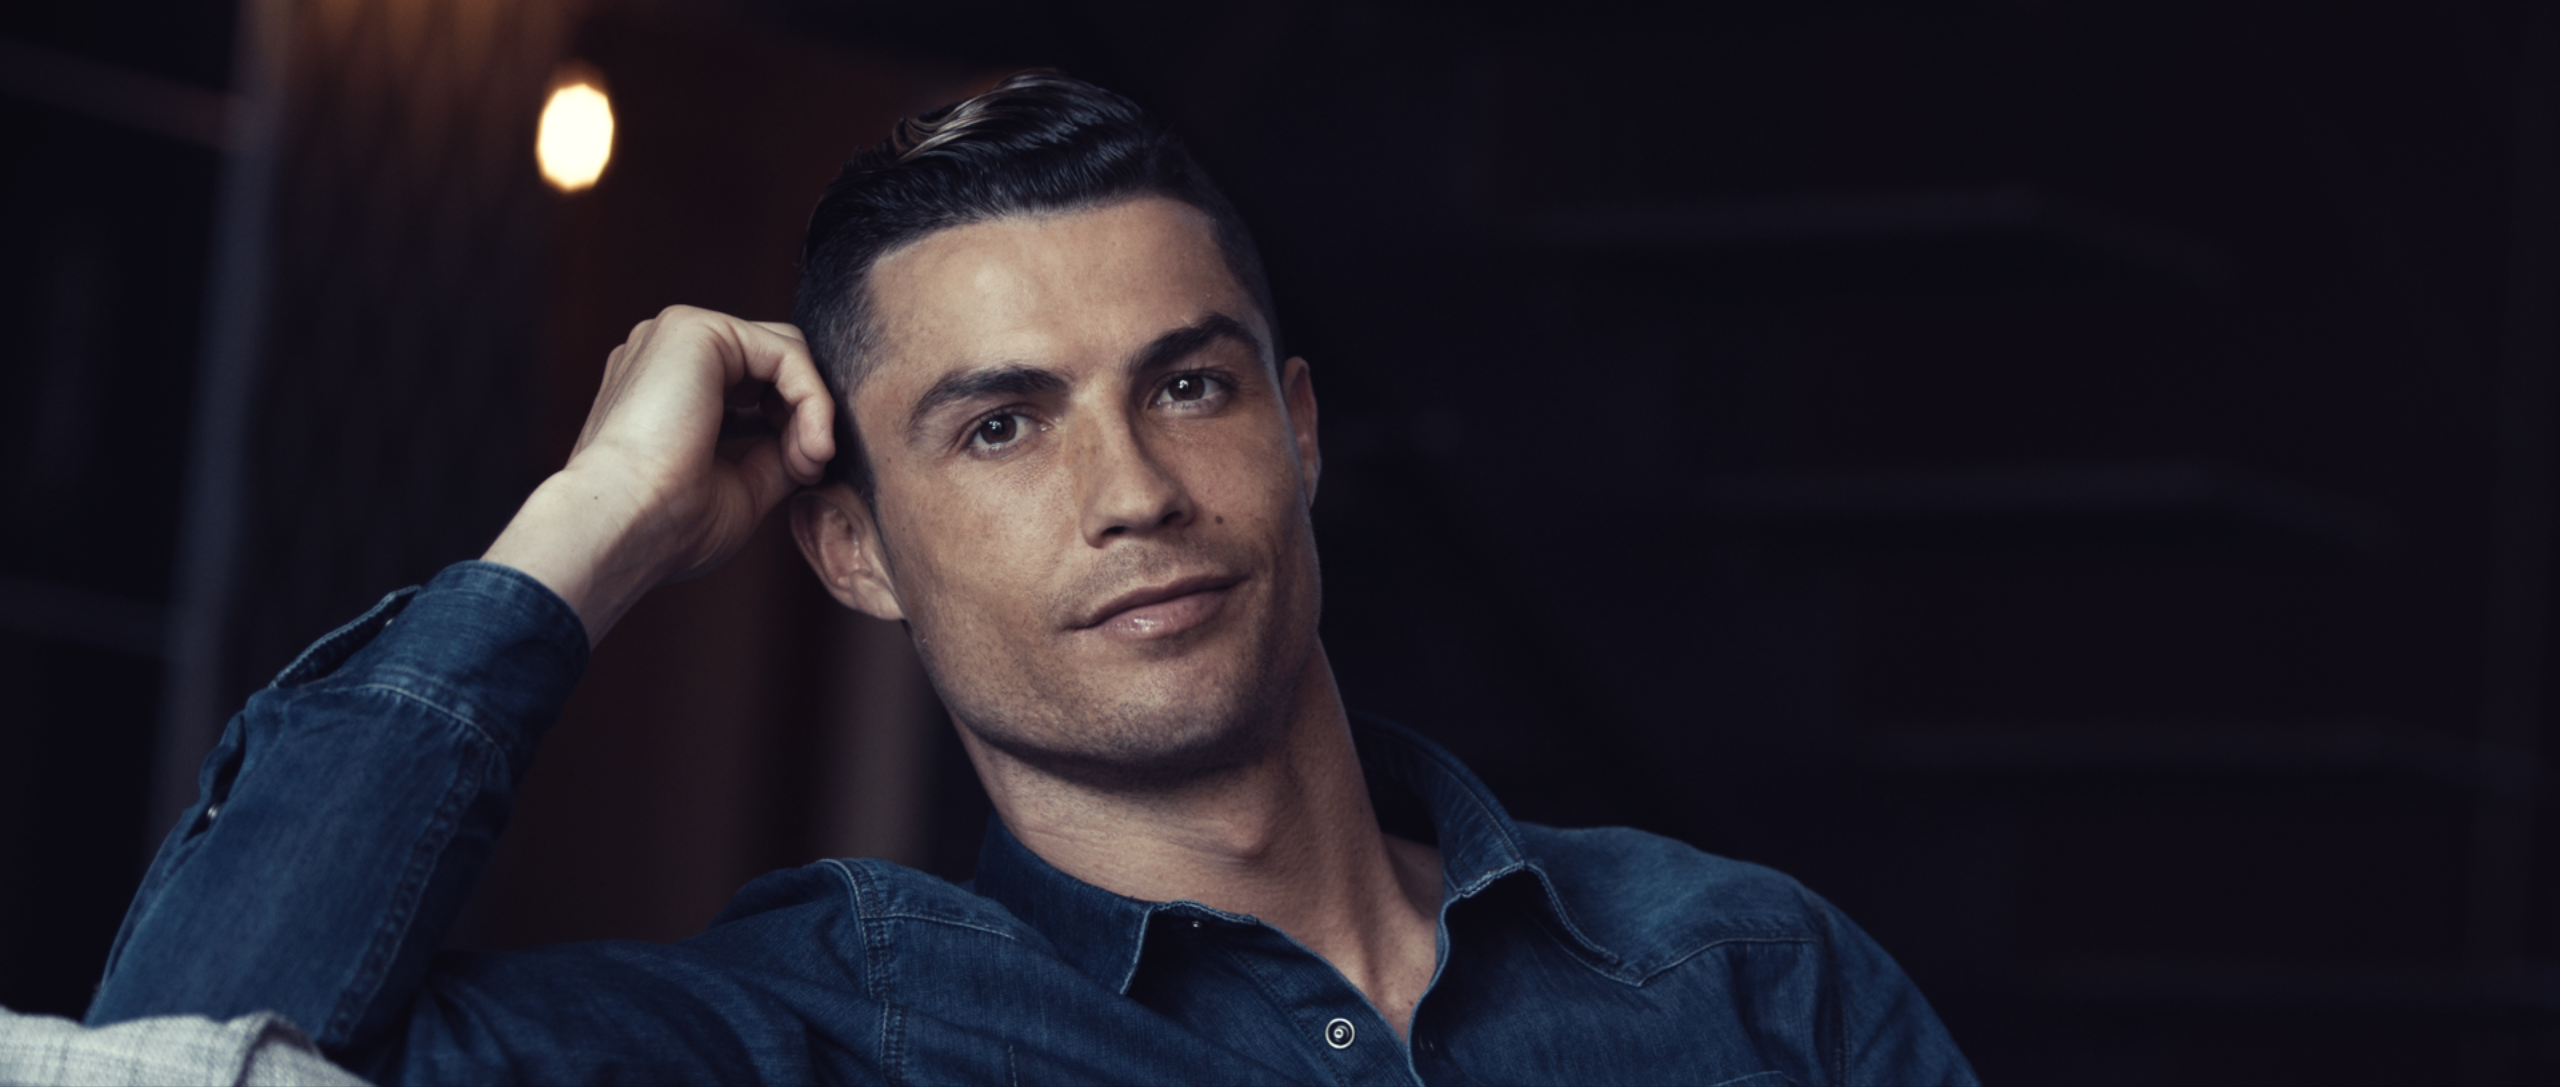 Daily Luxury | CR7 Play It Cool: Cristiano Ronaldo launches second fragrance